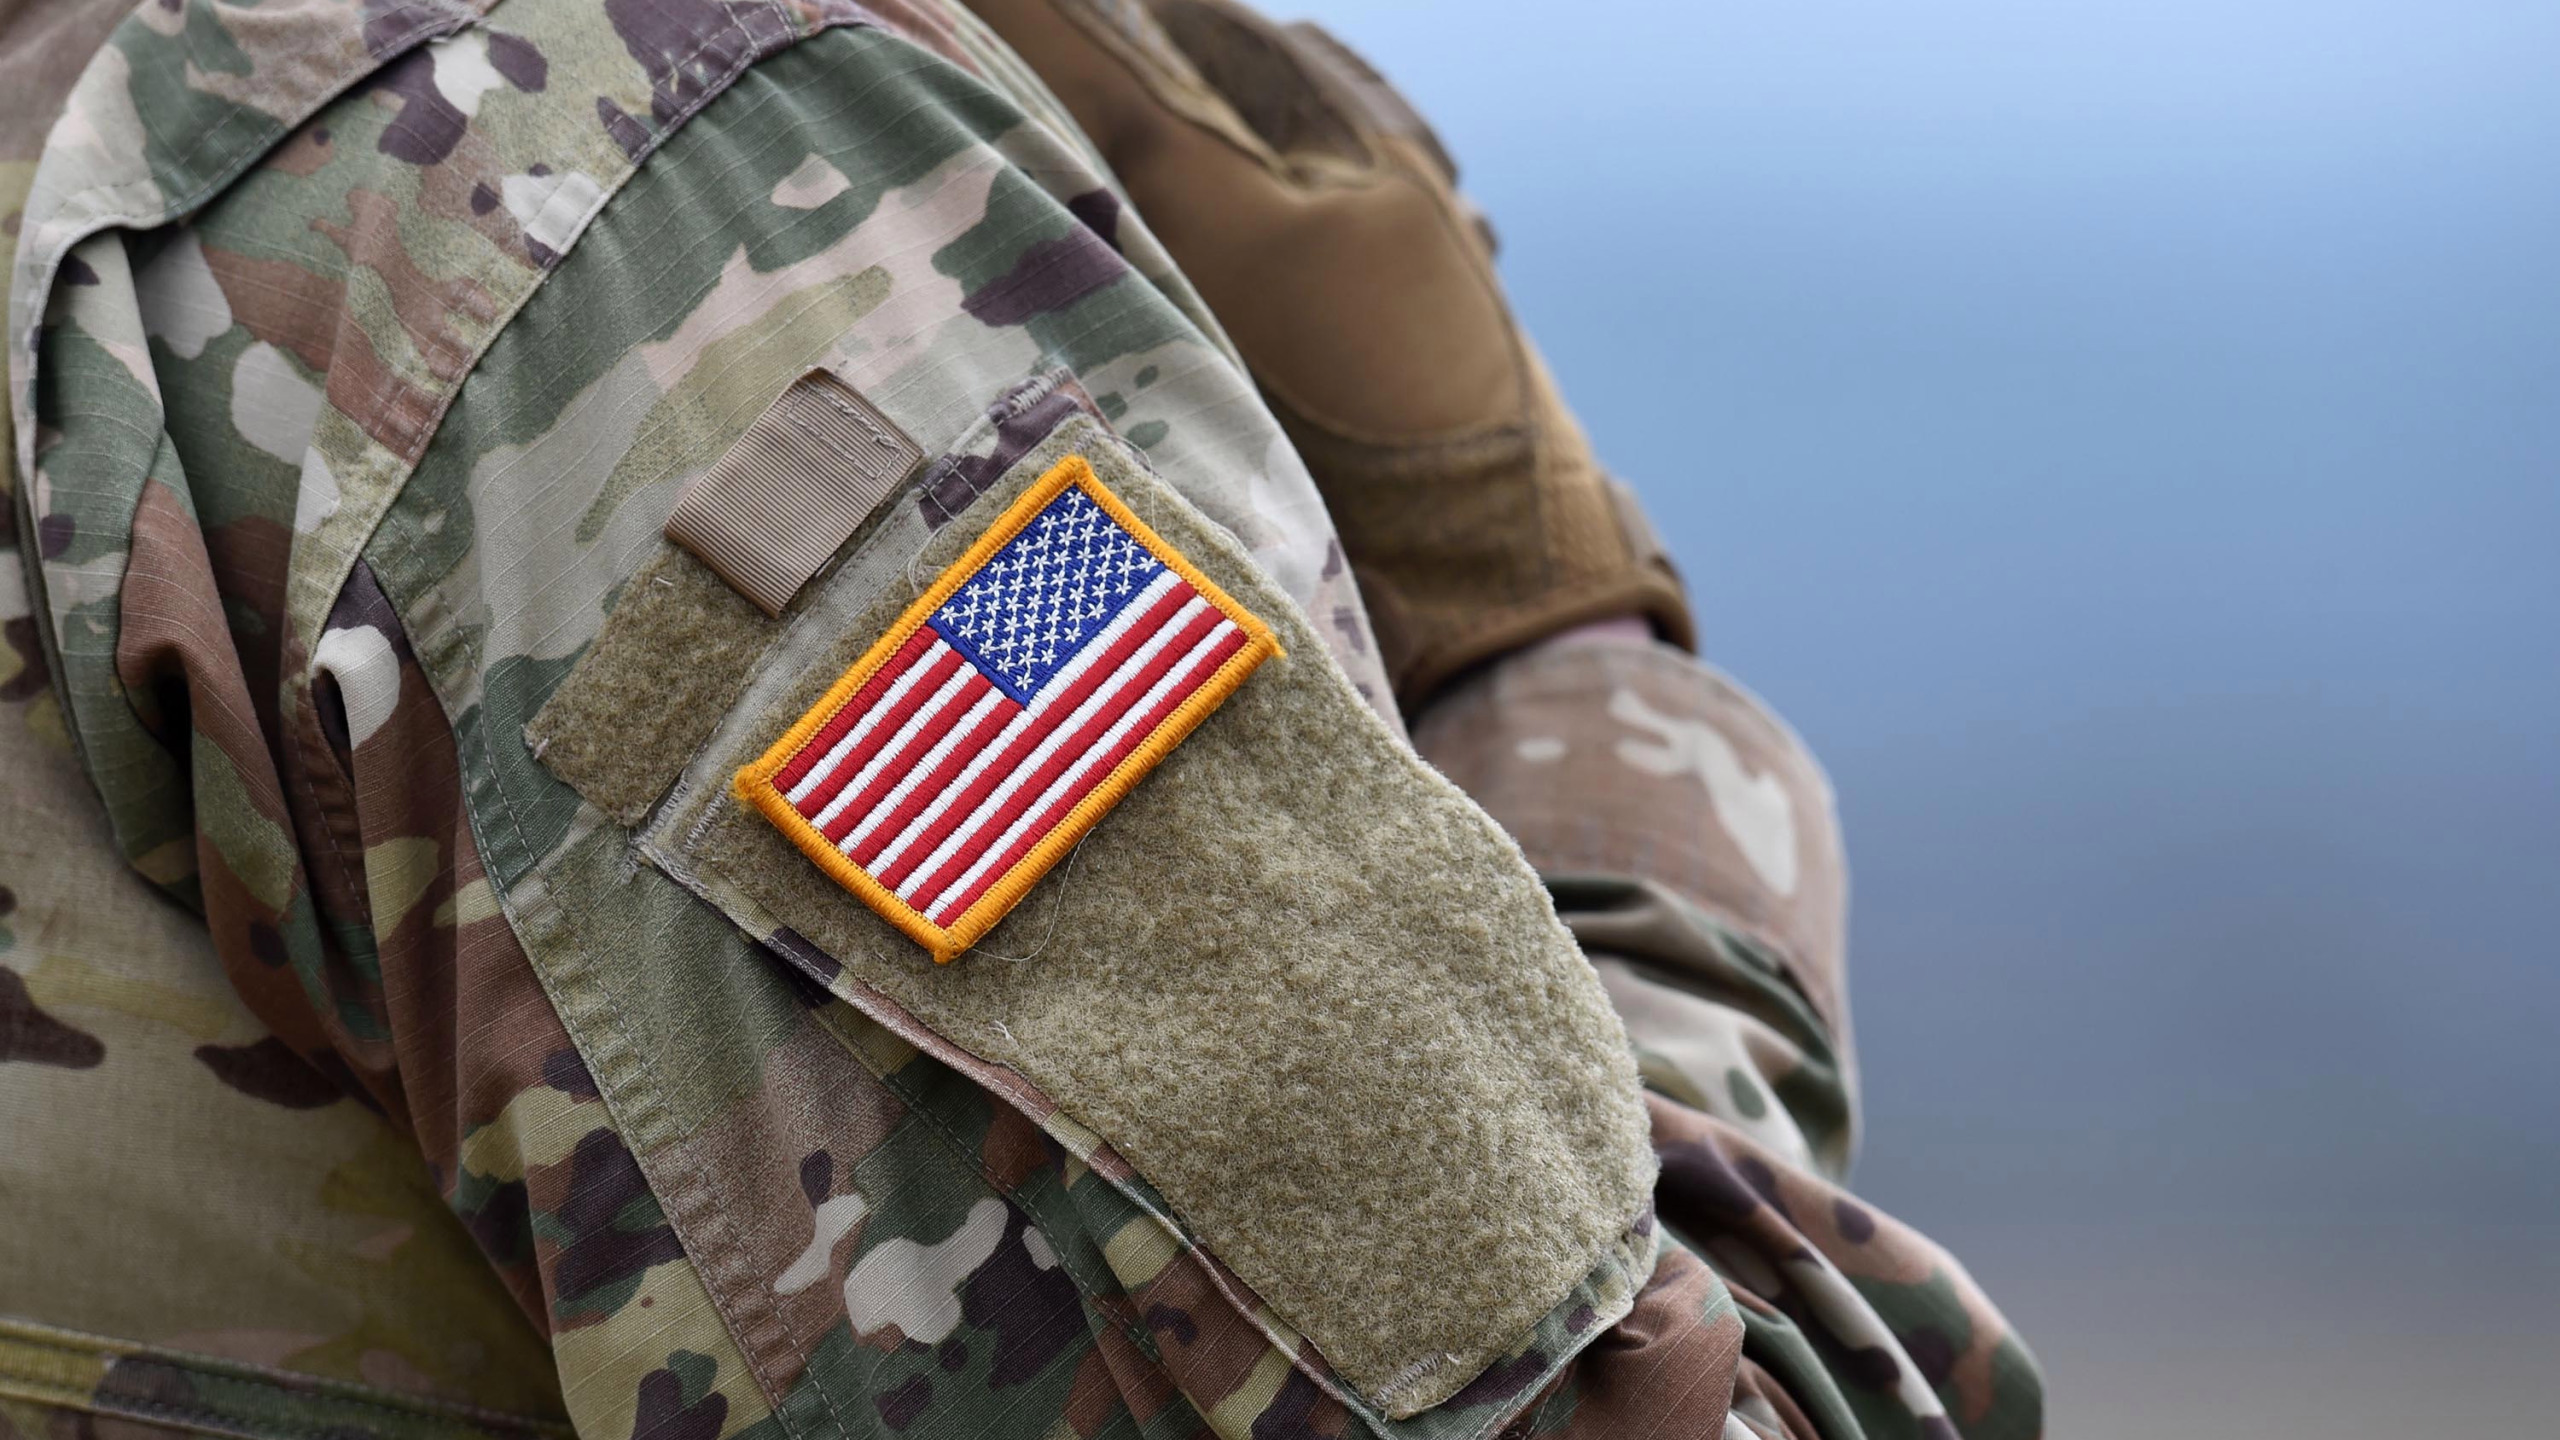 A US flag is pictured on a soldier's uniform during an artillery live fire event by the US Army Europe's 41st Field Artillery Brigade at the military training area in Grafenwoehr, southern Germany, on March 4, 2020.